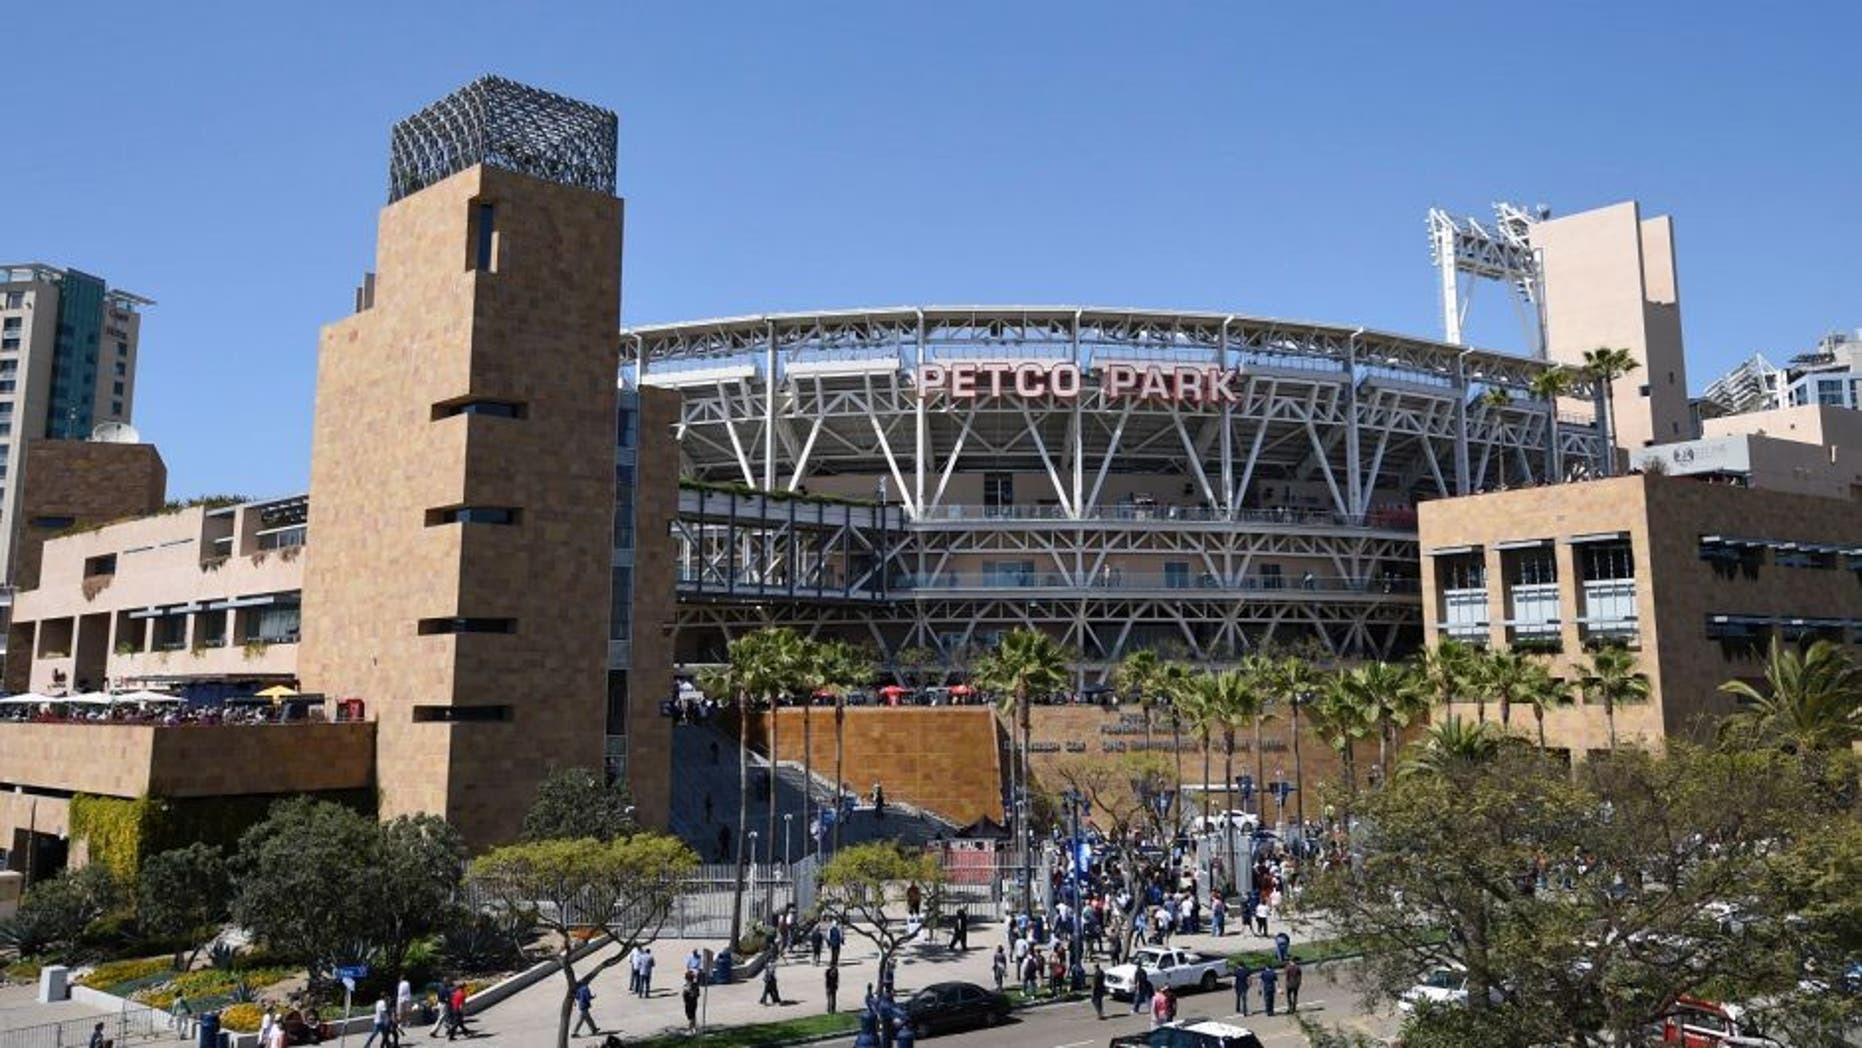 SAN DIEGO, CA - APRIL 9: General view as fans line-up get into Petco Park before the home opener between the San Diego Padres and the San Francisco Giants April 9, 2015 in San Diego, California. (Photo by Denis Poroy/Getty Images)